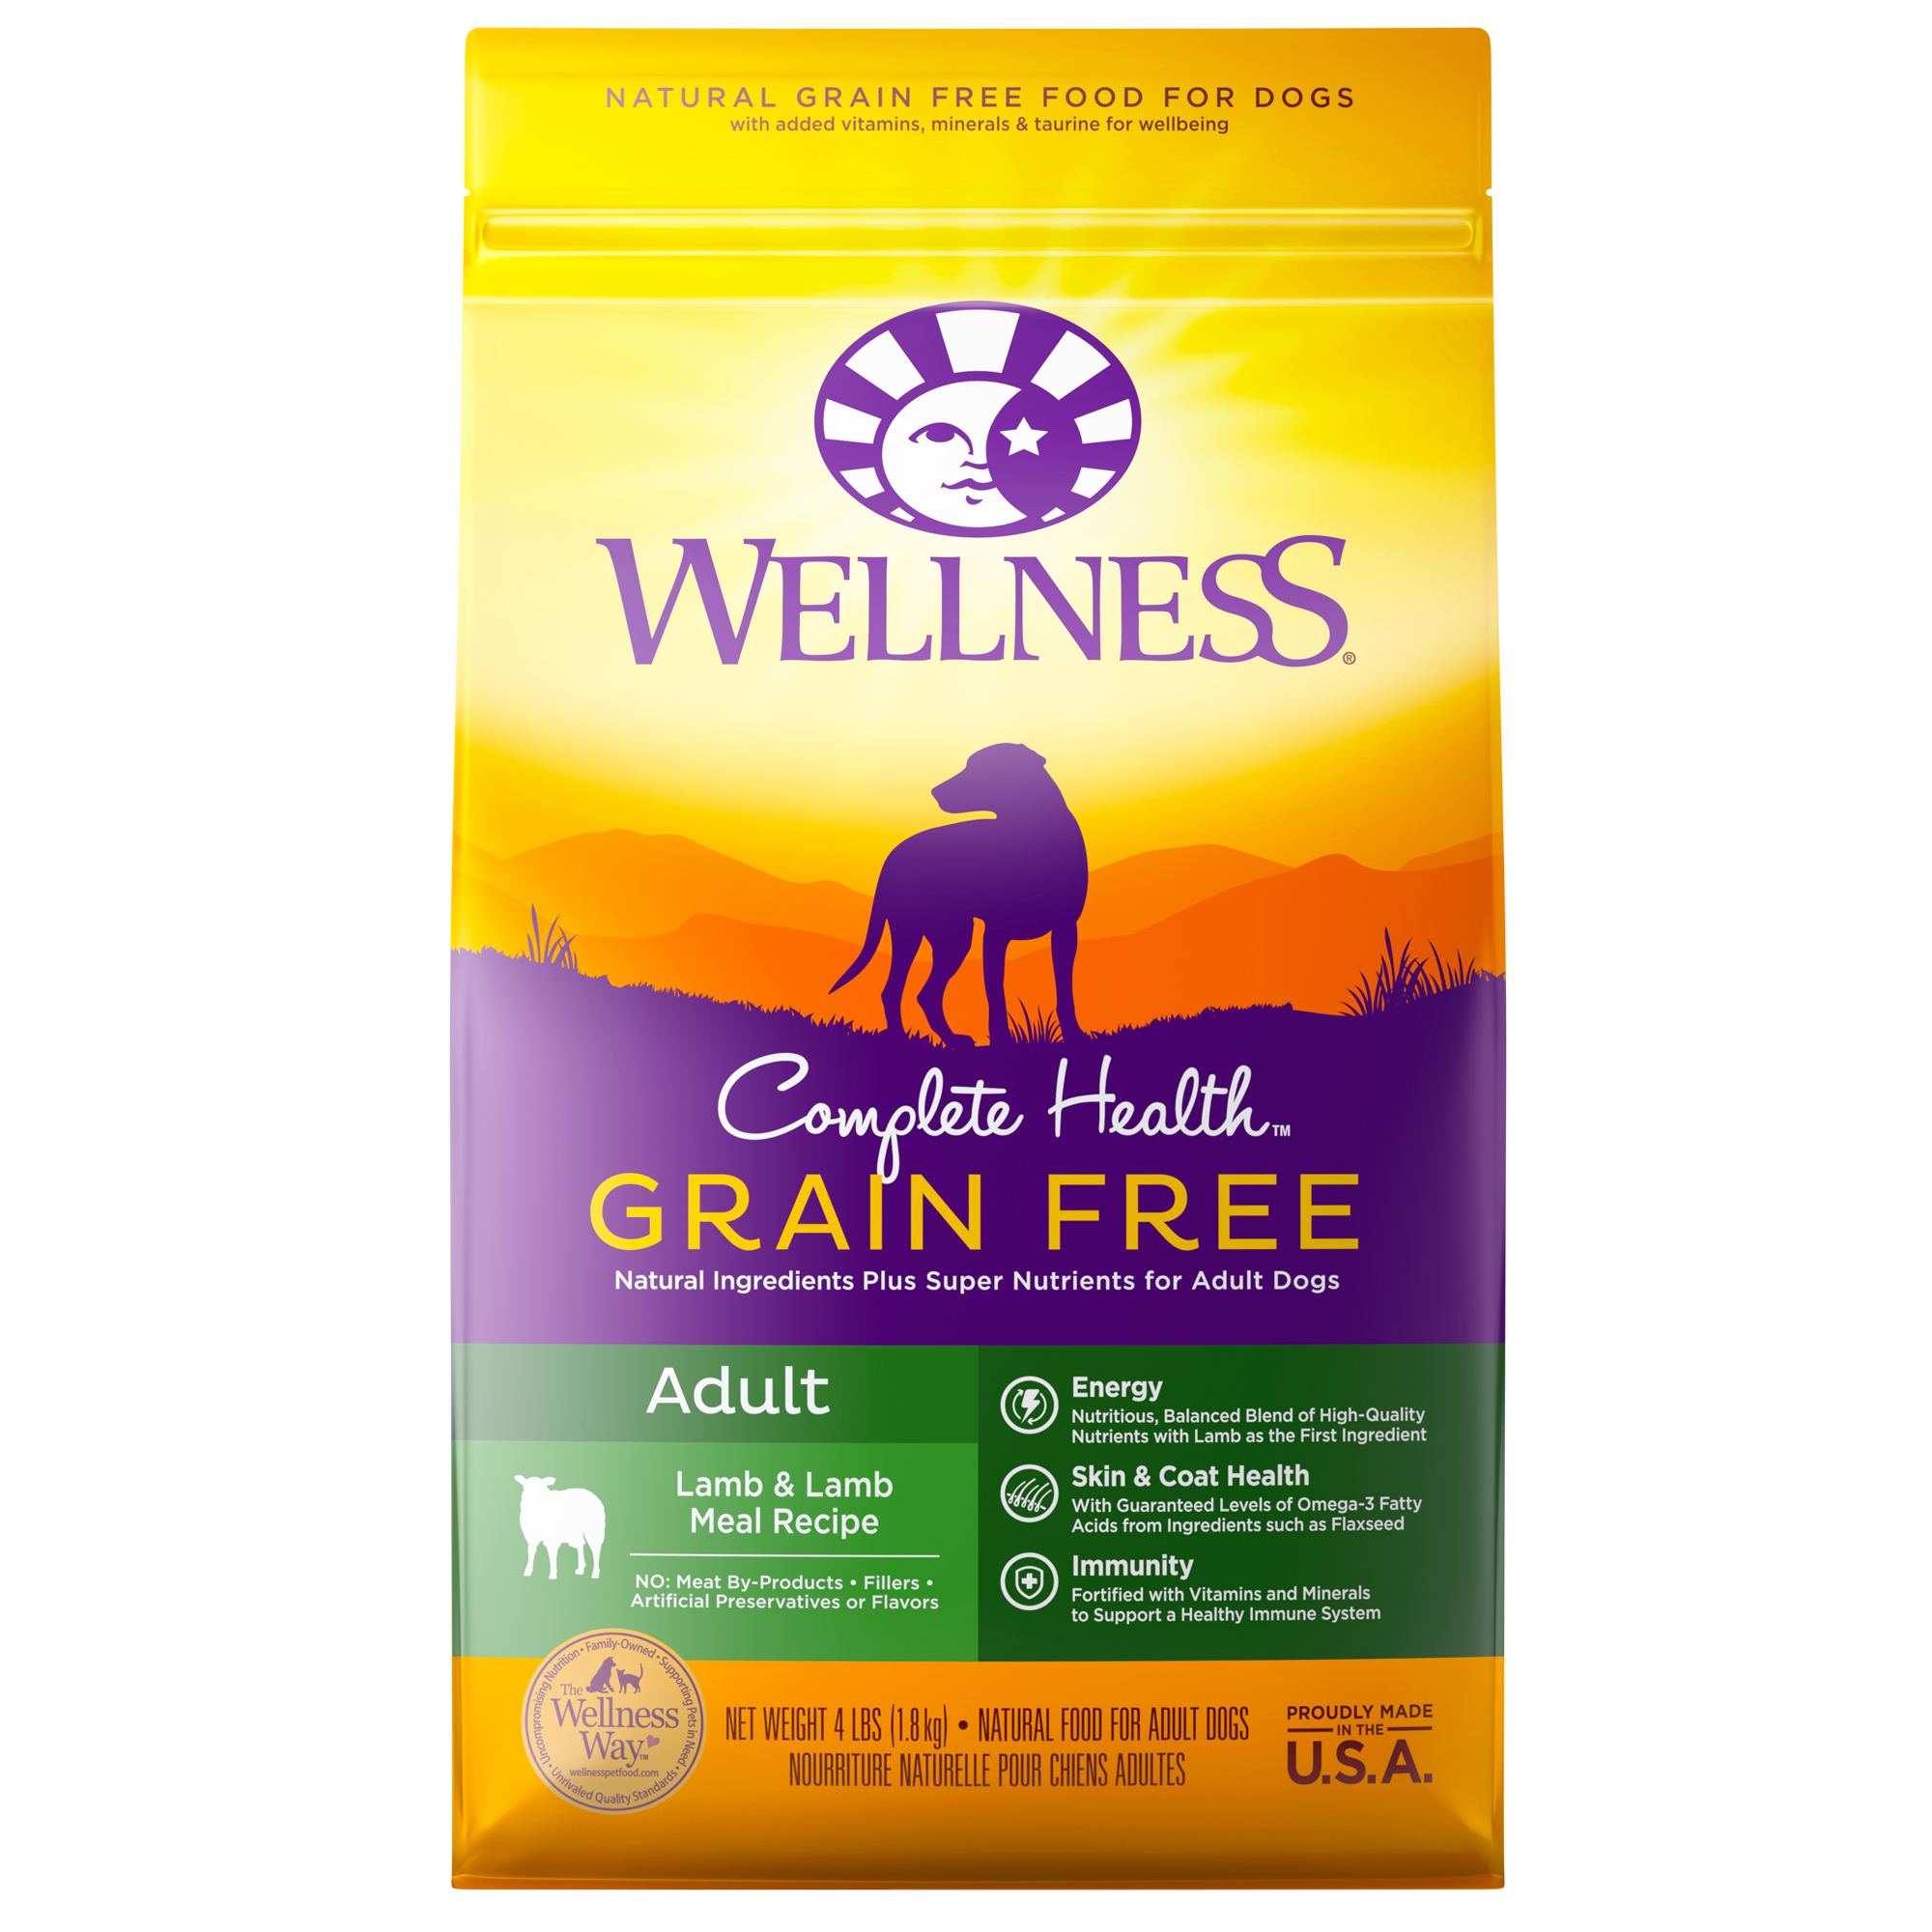 Complete Health Grain Free Wellness Pet Food